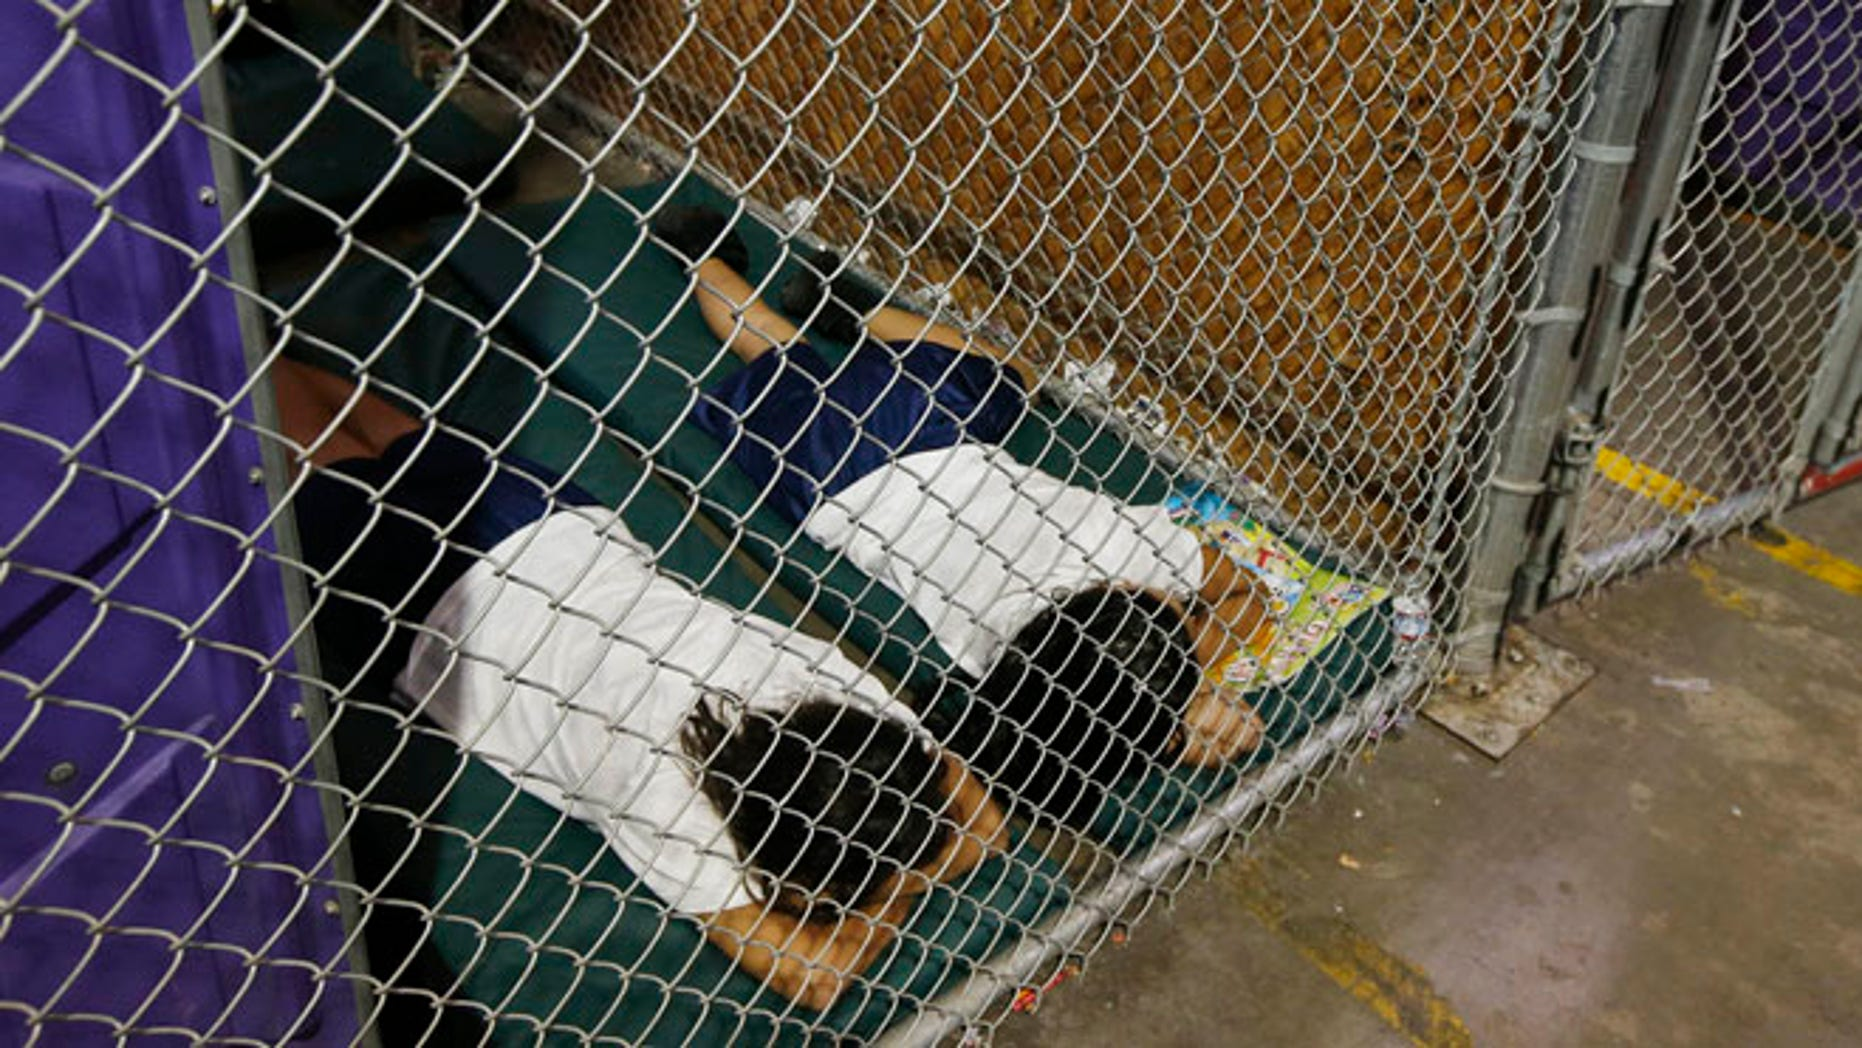 Two female detainees sleep in a holding cell, as the children are separated by age group and gender, as hundreds of mostly Central American immigrant children are being processed and held at the U.S. Customs and Border Protection (CBP) Nogales Placement Center in Nogales, Arizona, June 18, 2014.